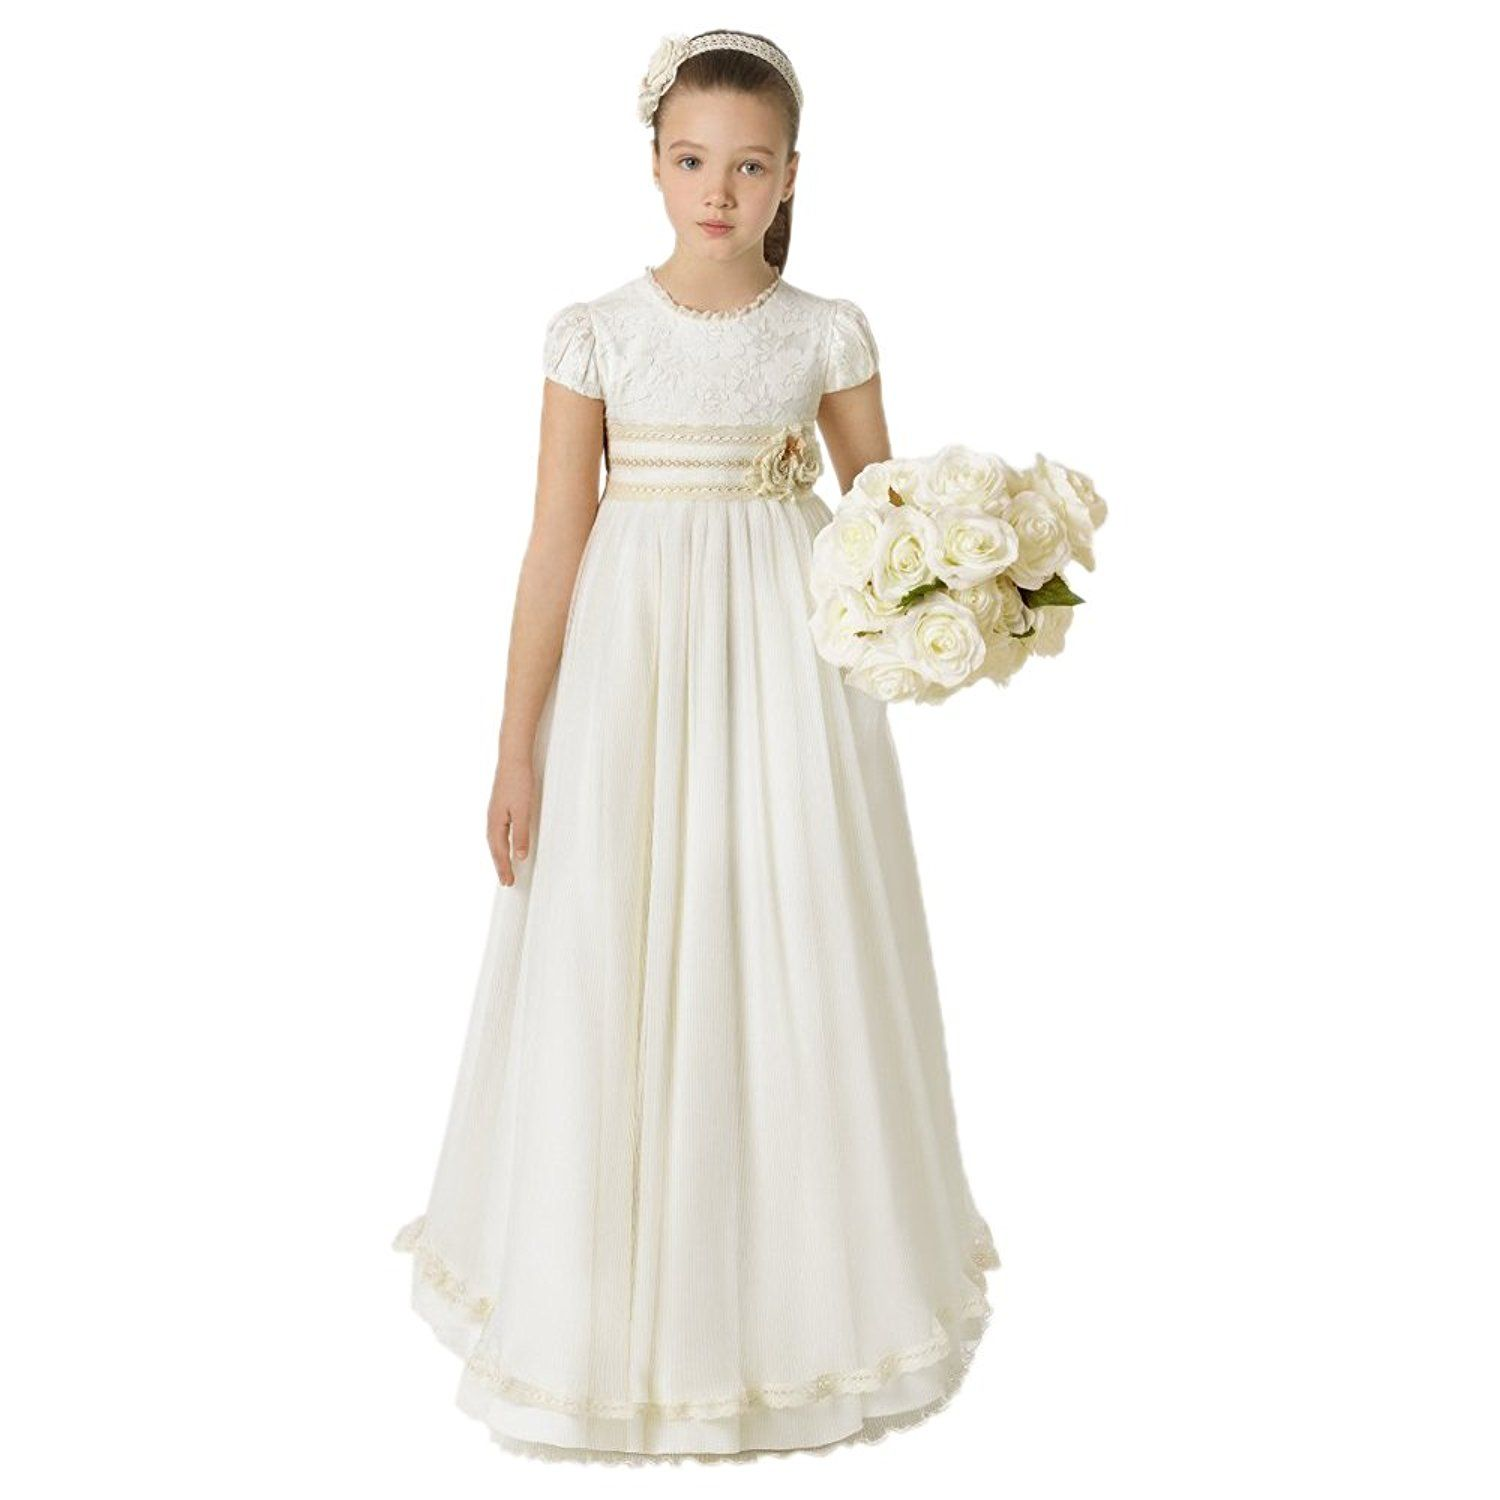 7846169ee8 Amazon.com  White Girls First Communion Dresses Princess Lovely Gowns 2016  2-12 Year Old  Clothing